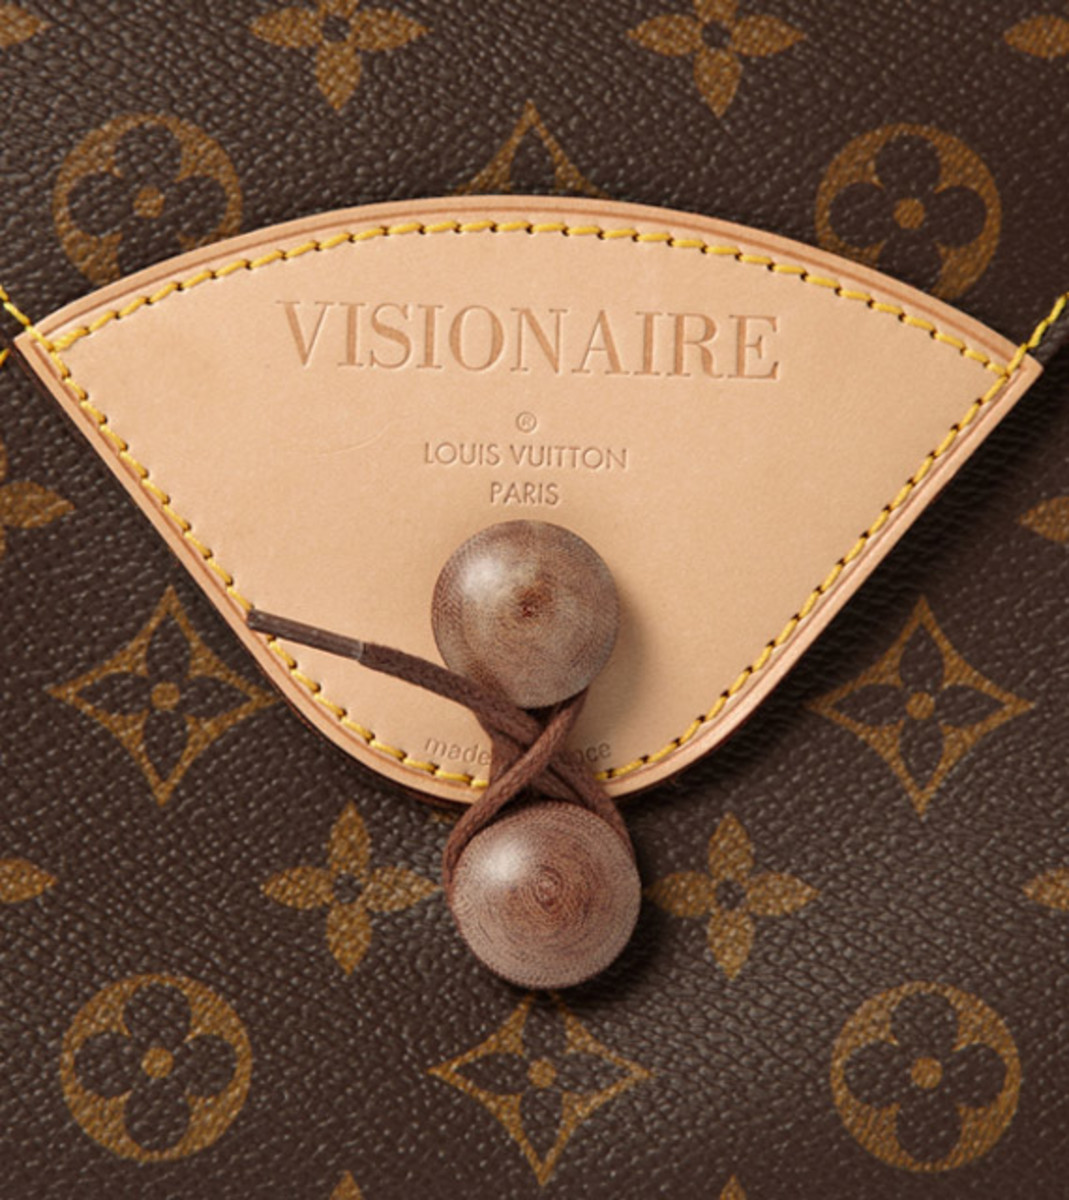 visionaire-18-fashion-special-by-louis-vuitton-mr-porter-05